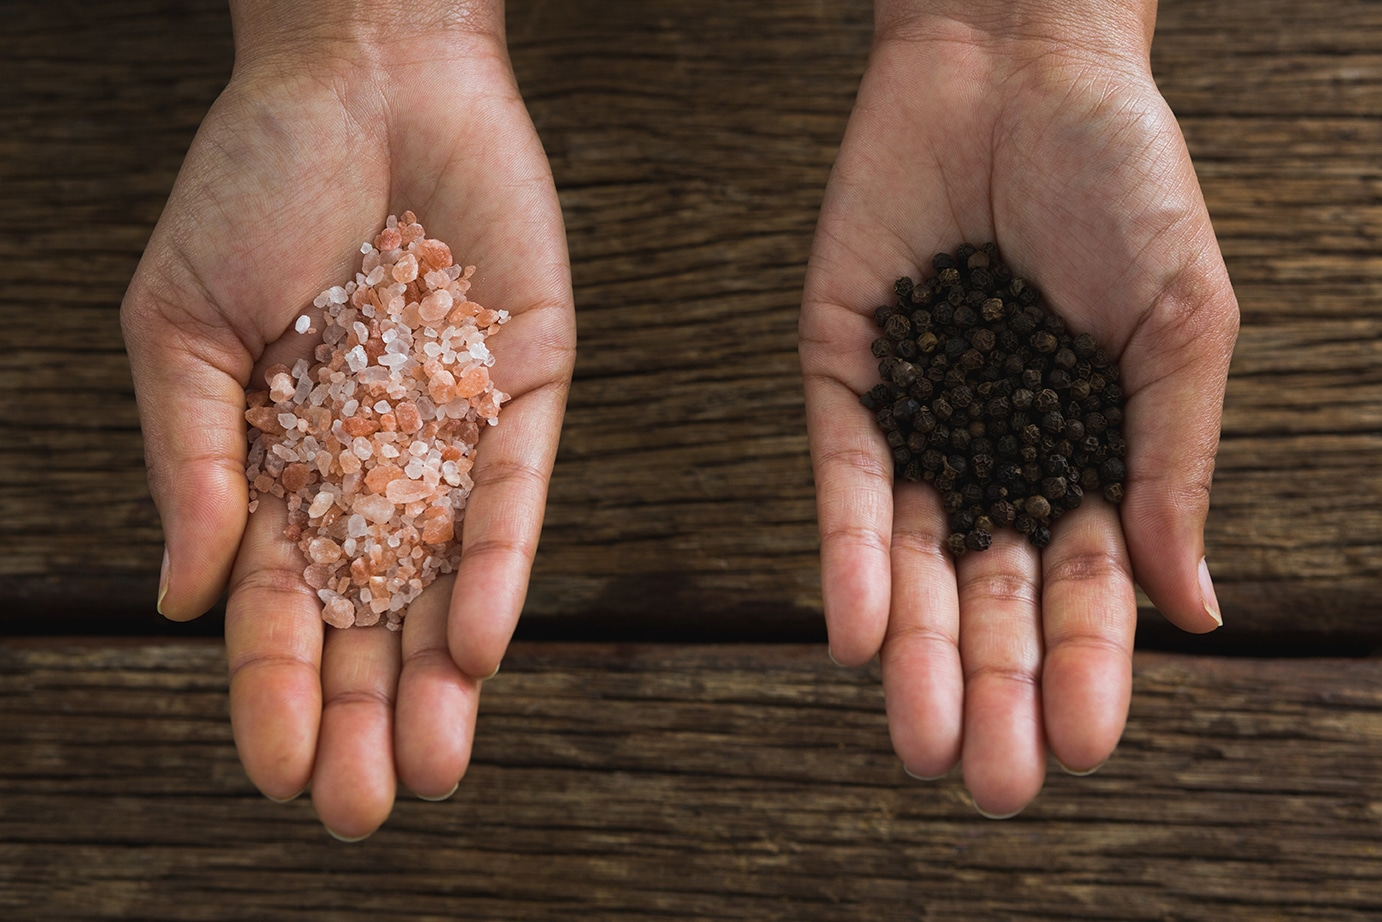 how to prevent tooth decay naturally -Hands holding sea salt and black pepper seeds